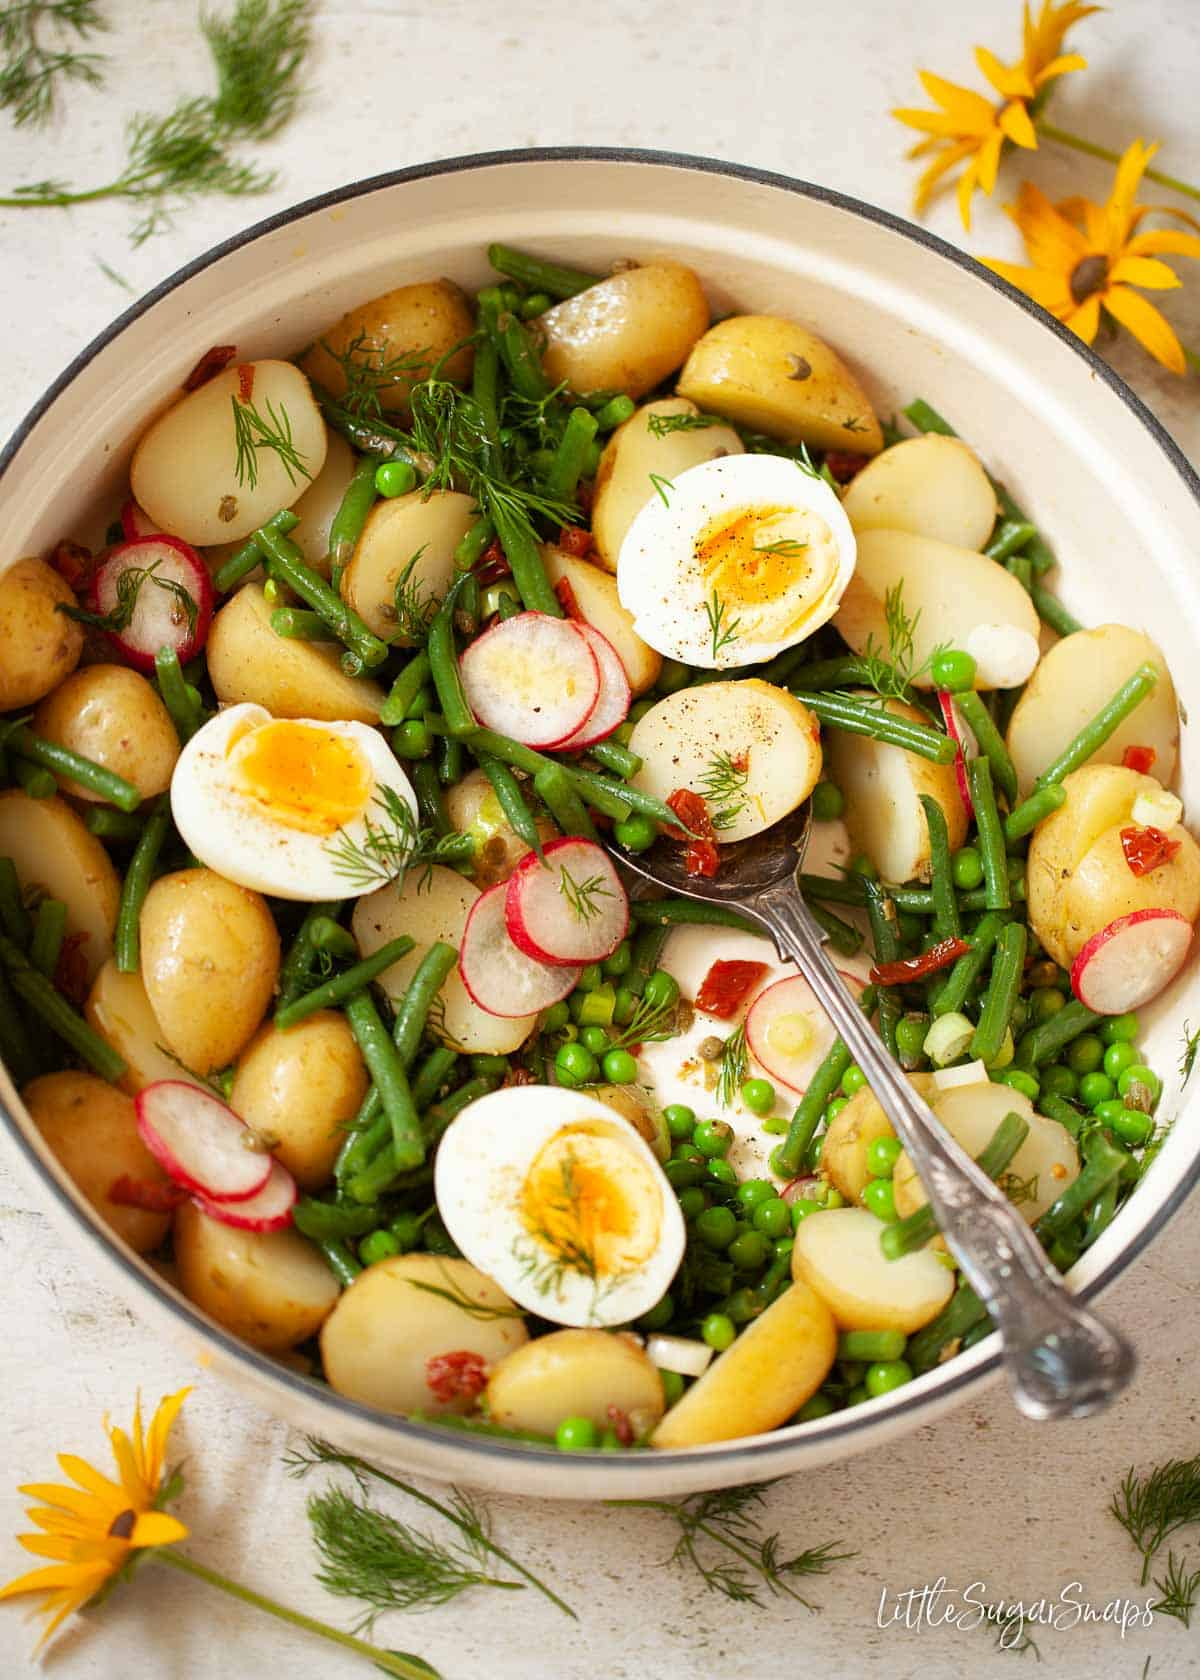 A pot of green bean and potato salad topped with hard boiled eggs